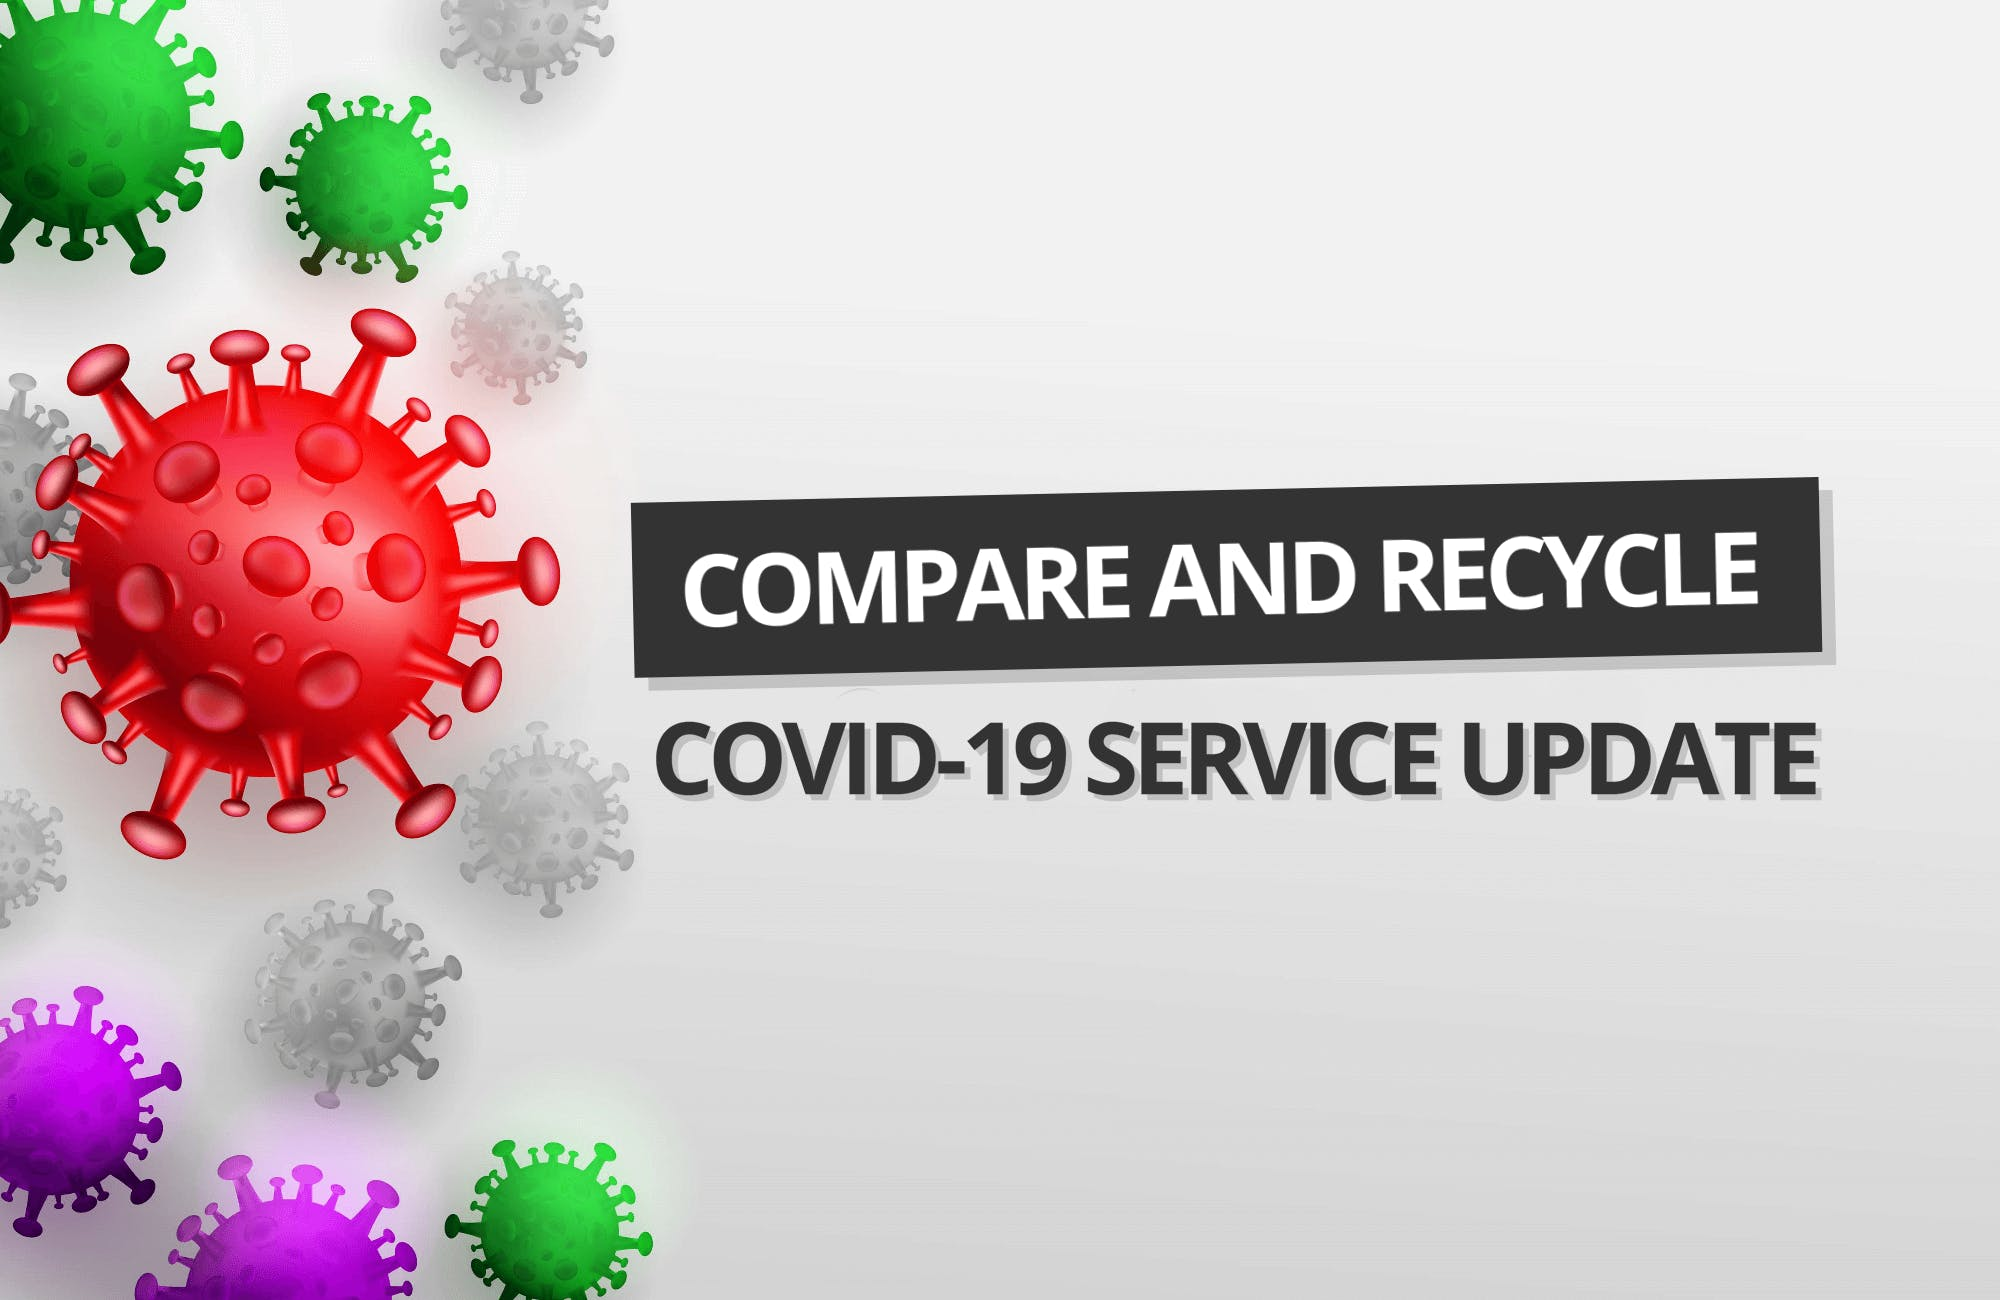 COVID-19: Compare and Recycle Service Update